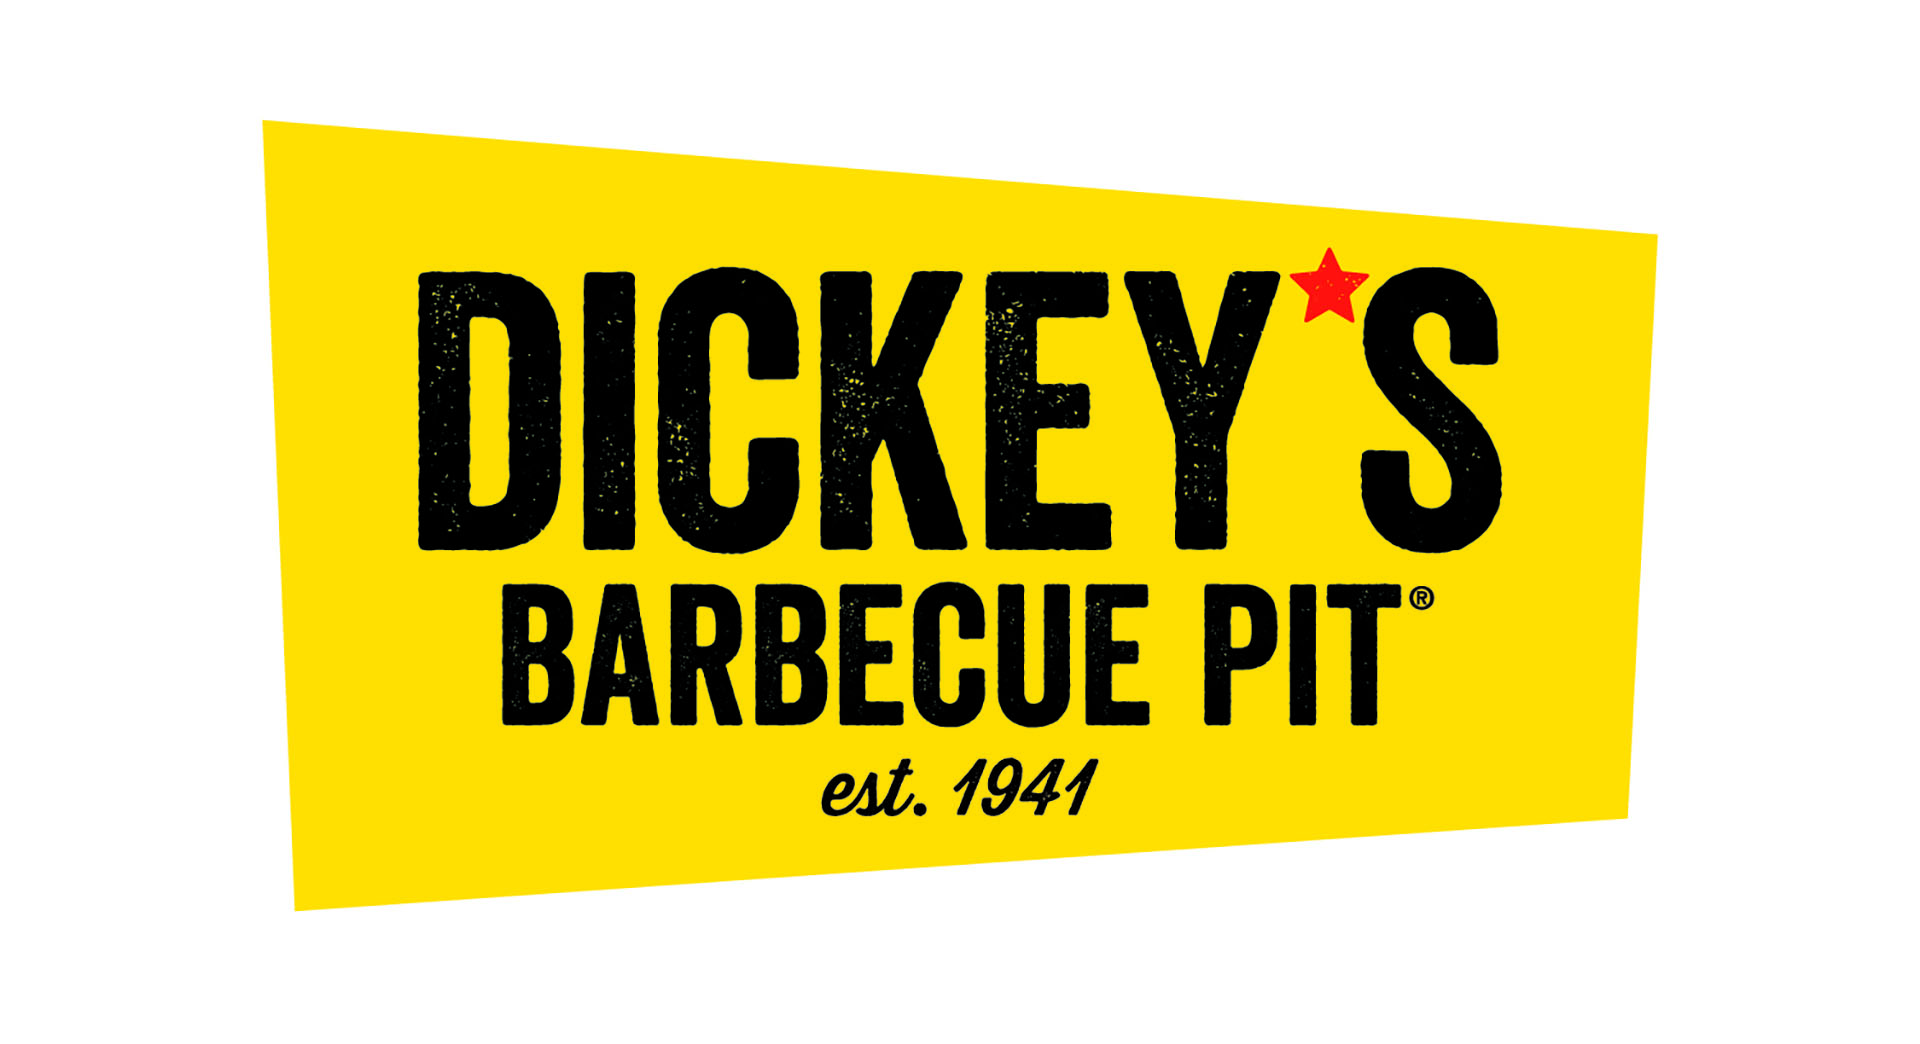 Dickey's Barbecue Pit opening in Dale City